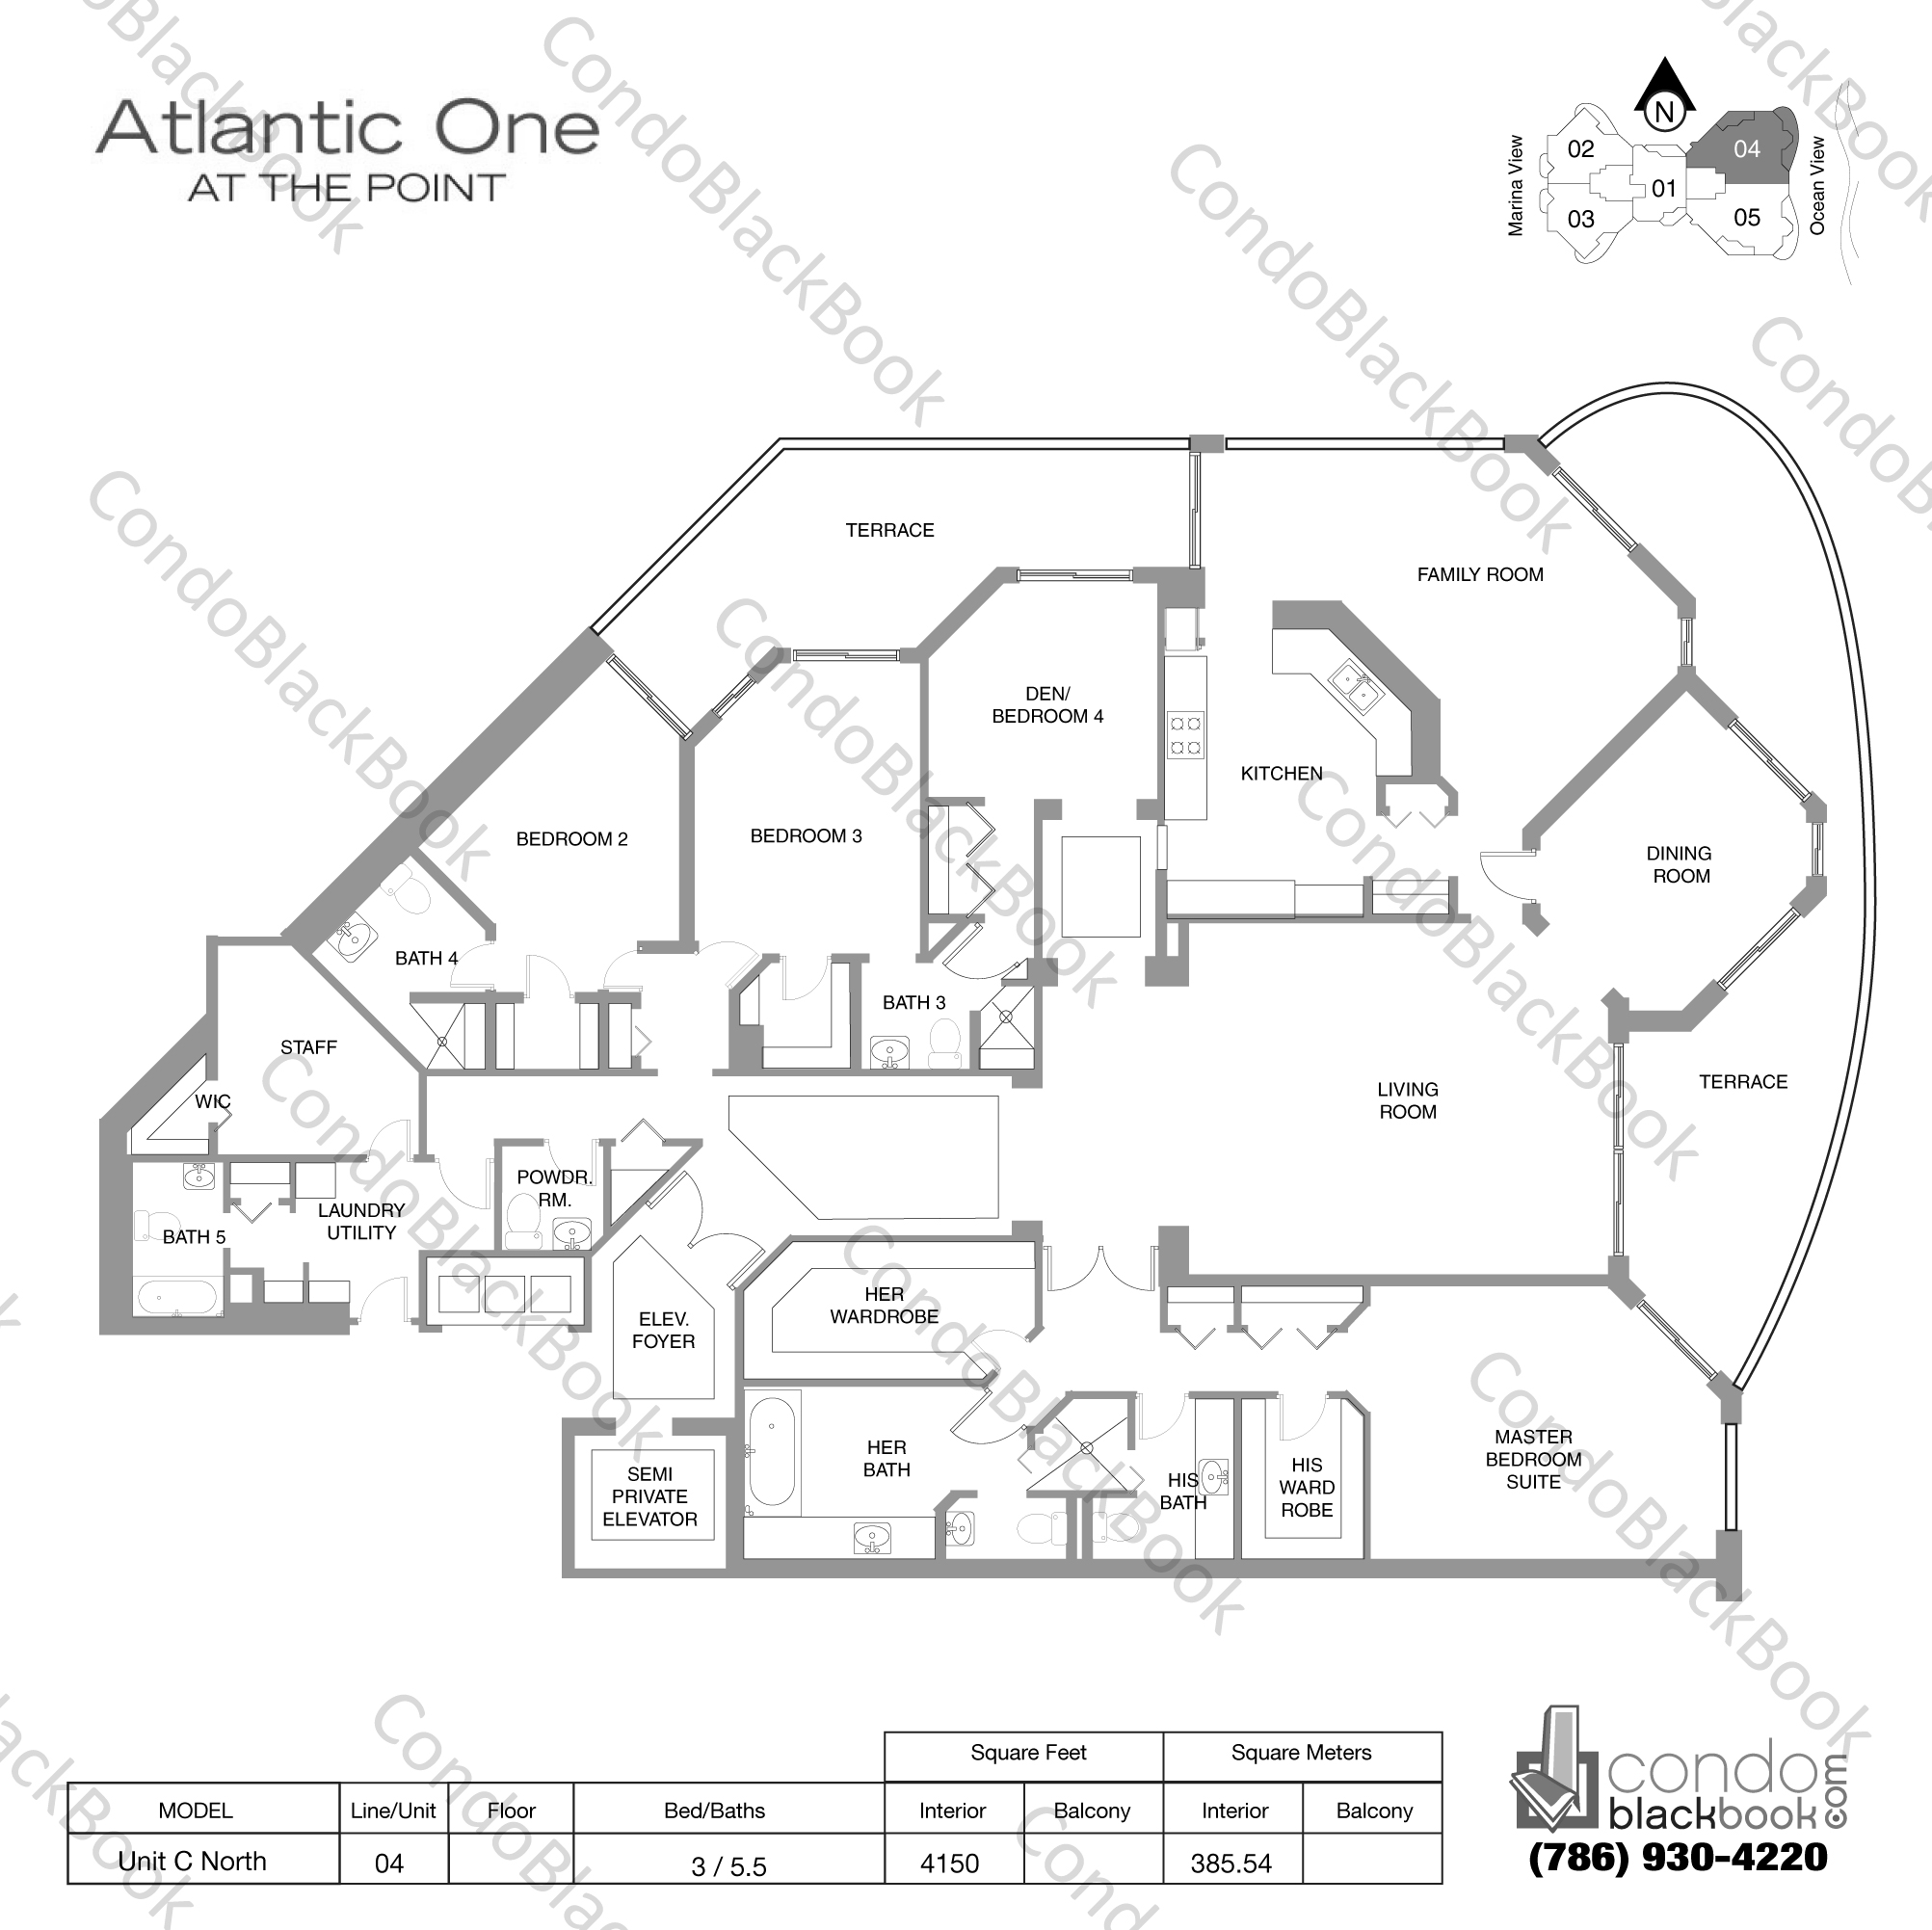 Floor plan for Atlantic I at the Point Aventura, model Unit C North, line 04, 3 / 5.5 bedrooms, 4150 sq ft